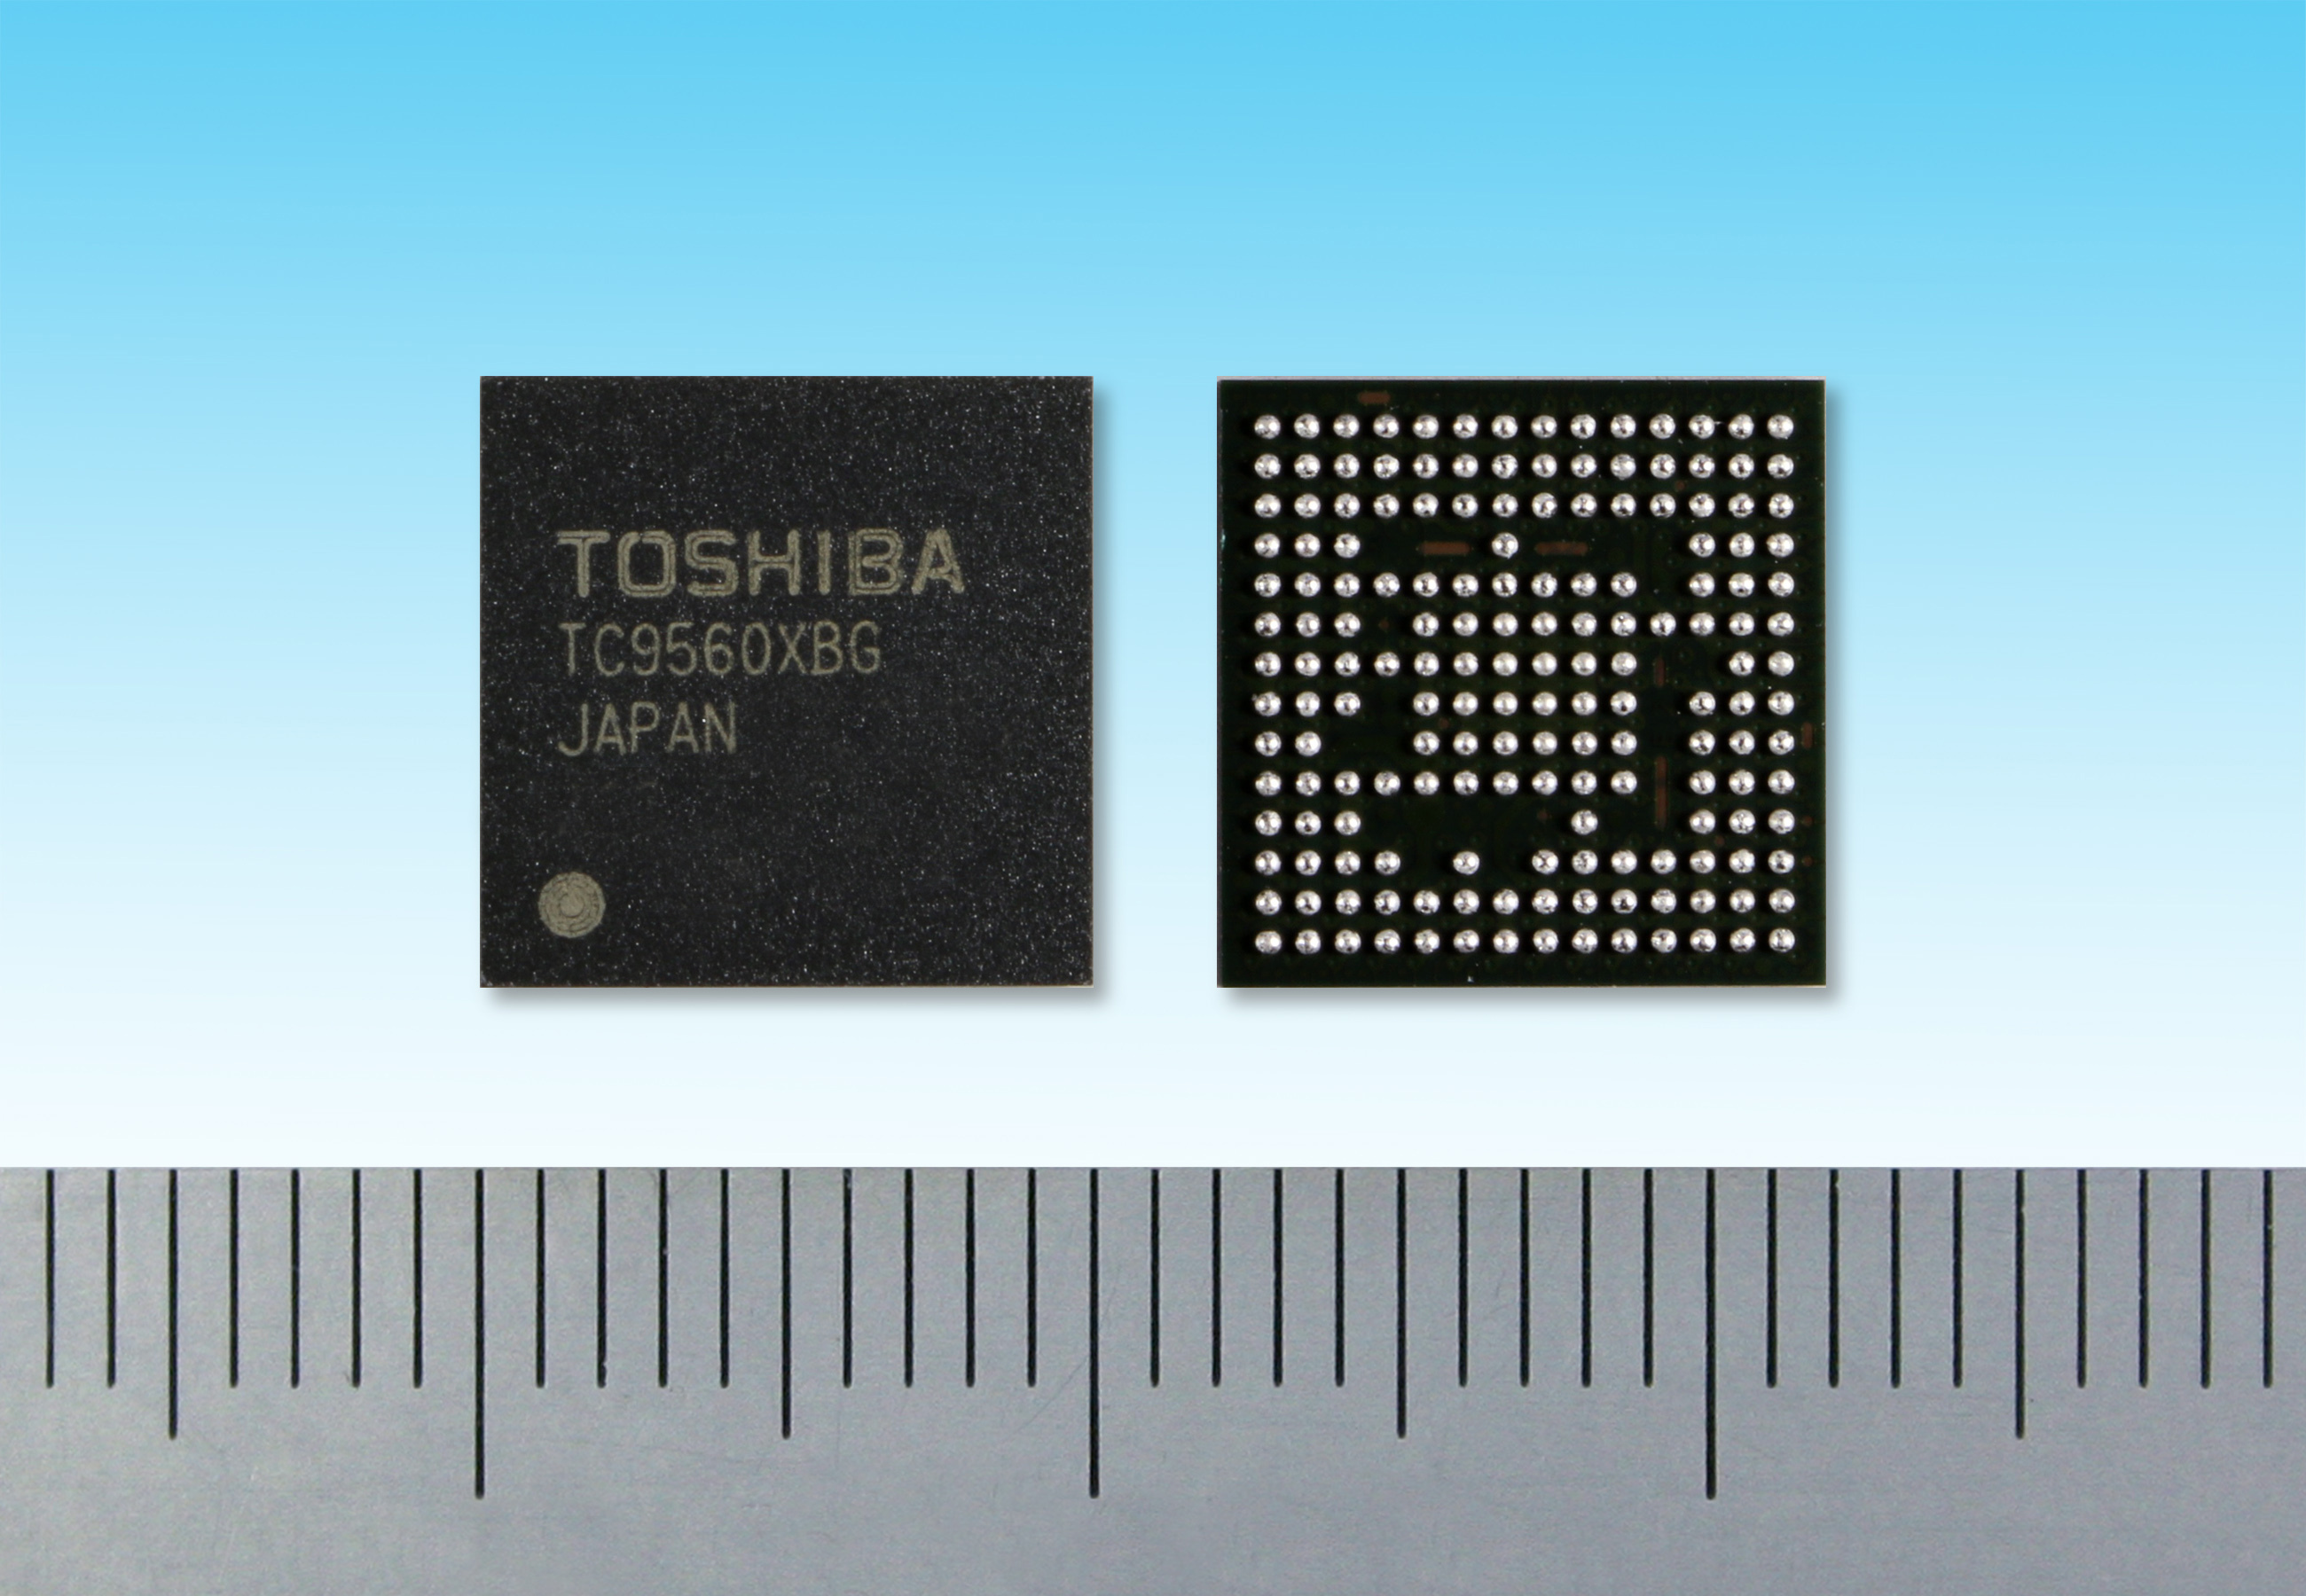 """Toshiba: """"TC9560XBG"""", an automotive-grade Ethernet bridge solution for in-vehicle infotainment (IVI) and other automotive applications. (Photo: Business Wire)"""